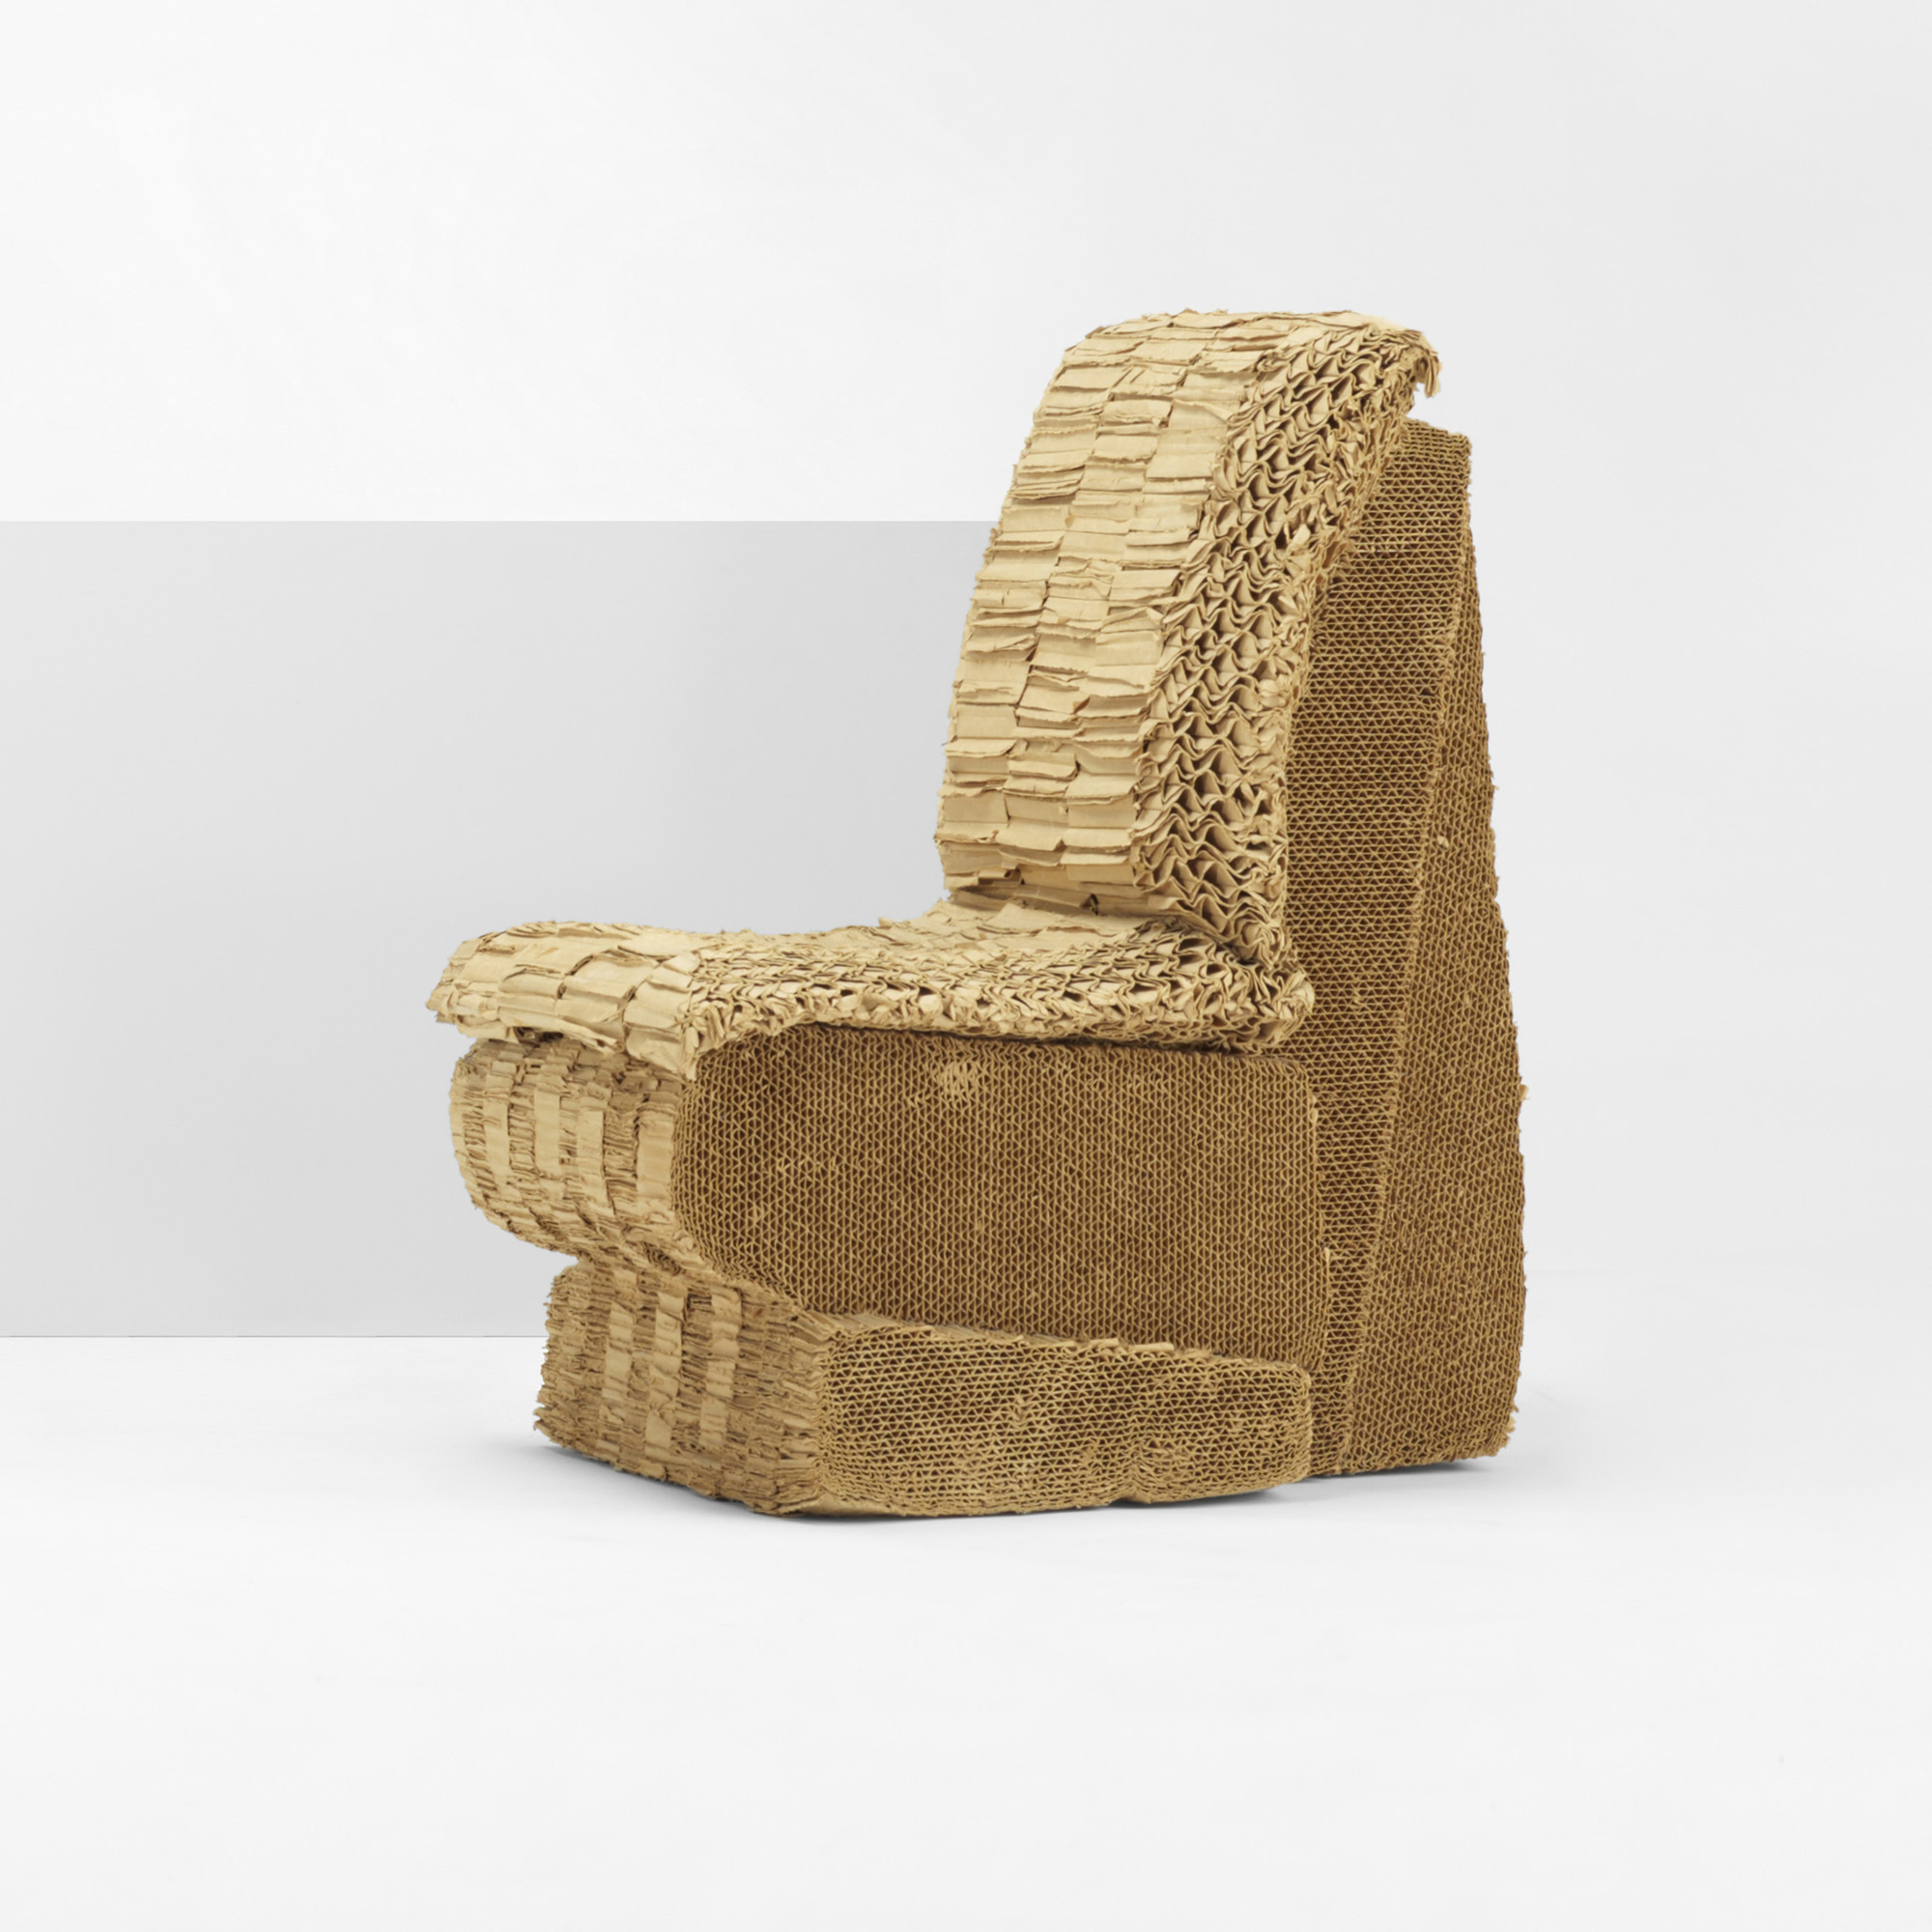 133: Frank Gehry / Sitting Beaver Chair (1 Of 6)